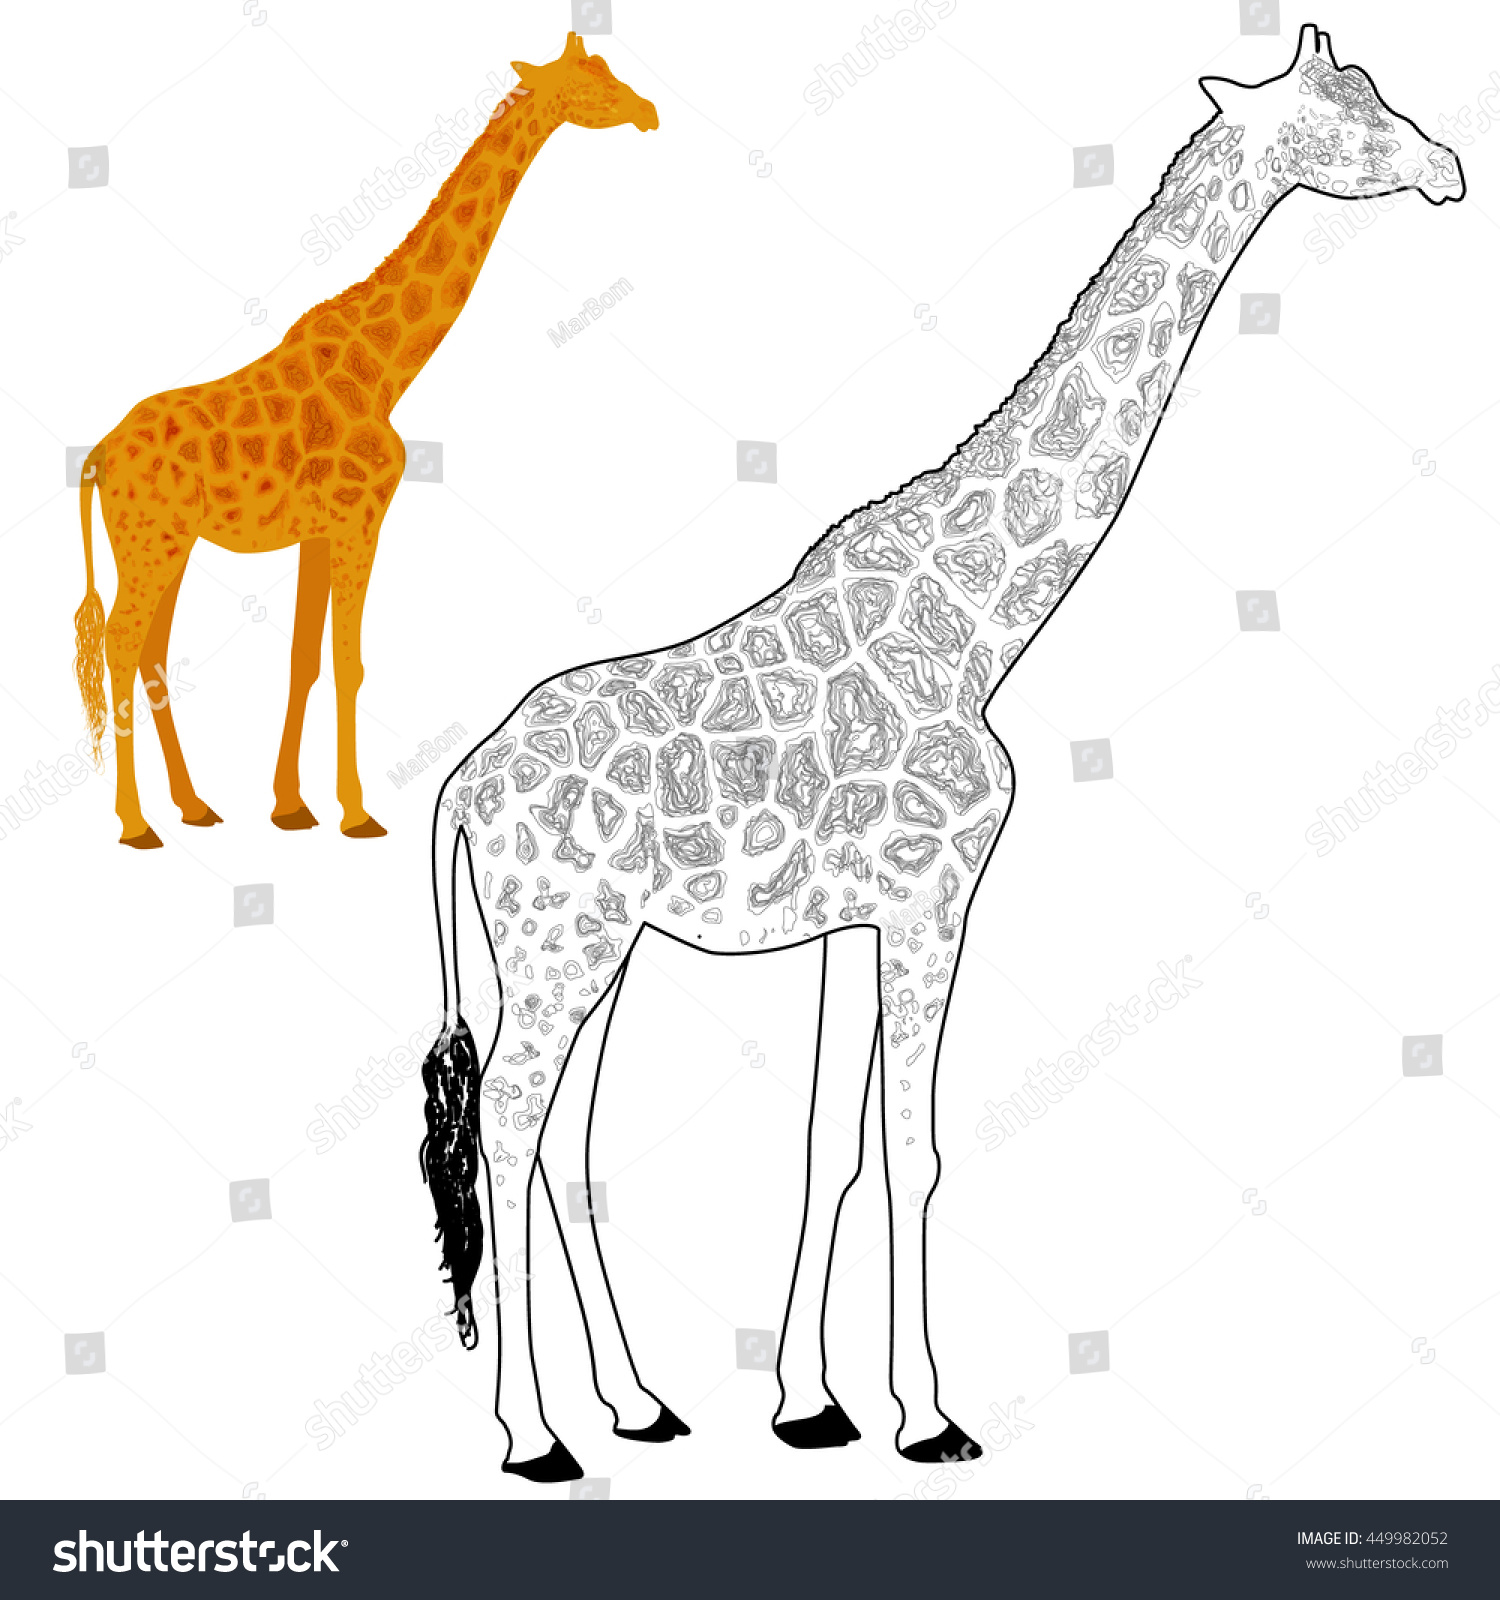 giraffe coloring page vector stock vector 449982052 shutterstock